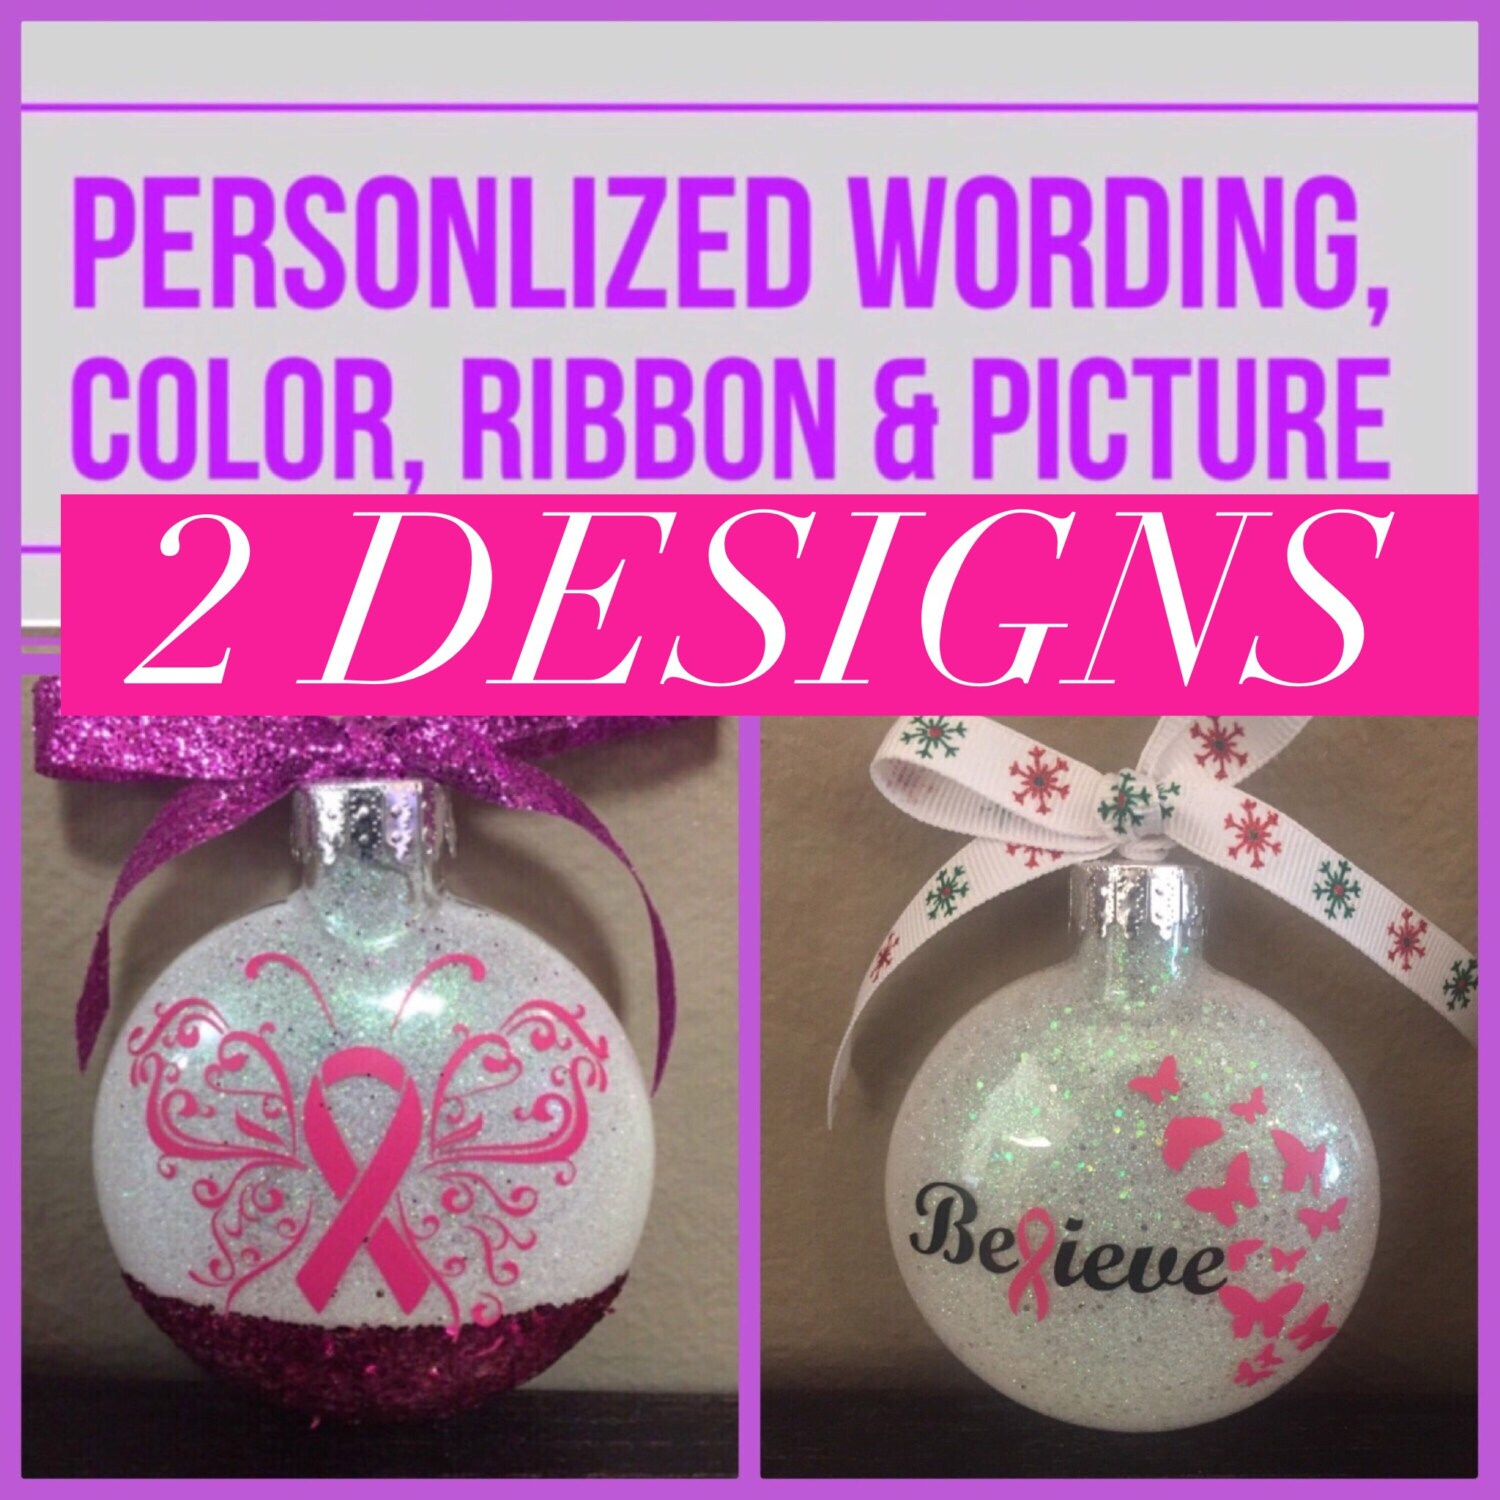 Breast cancer ornament - Breast Cancer Ornament Breast Cancer Awareness Ornament Christmas Ornament Santa